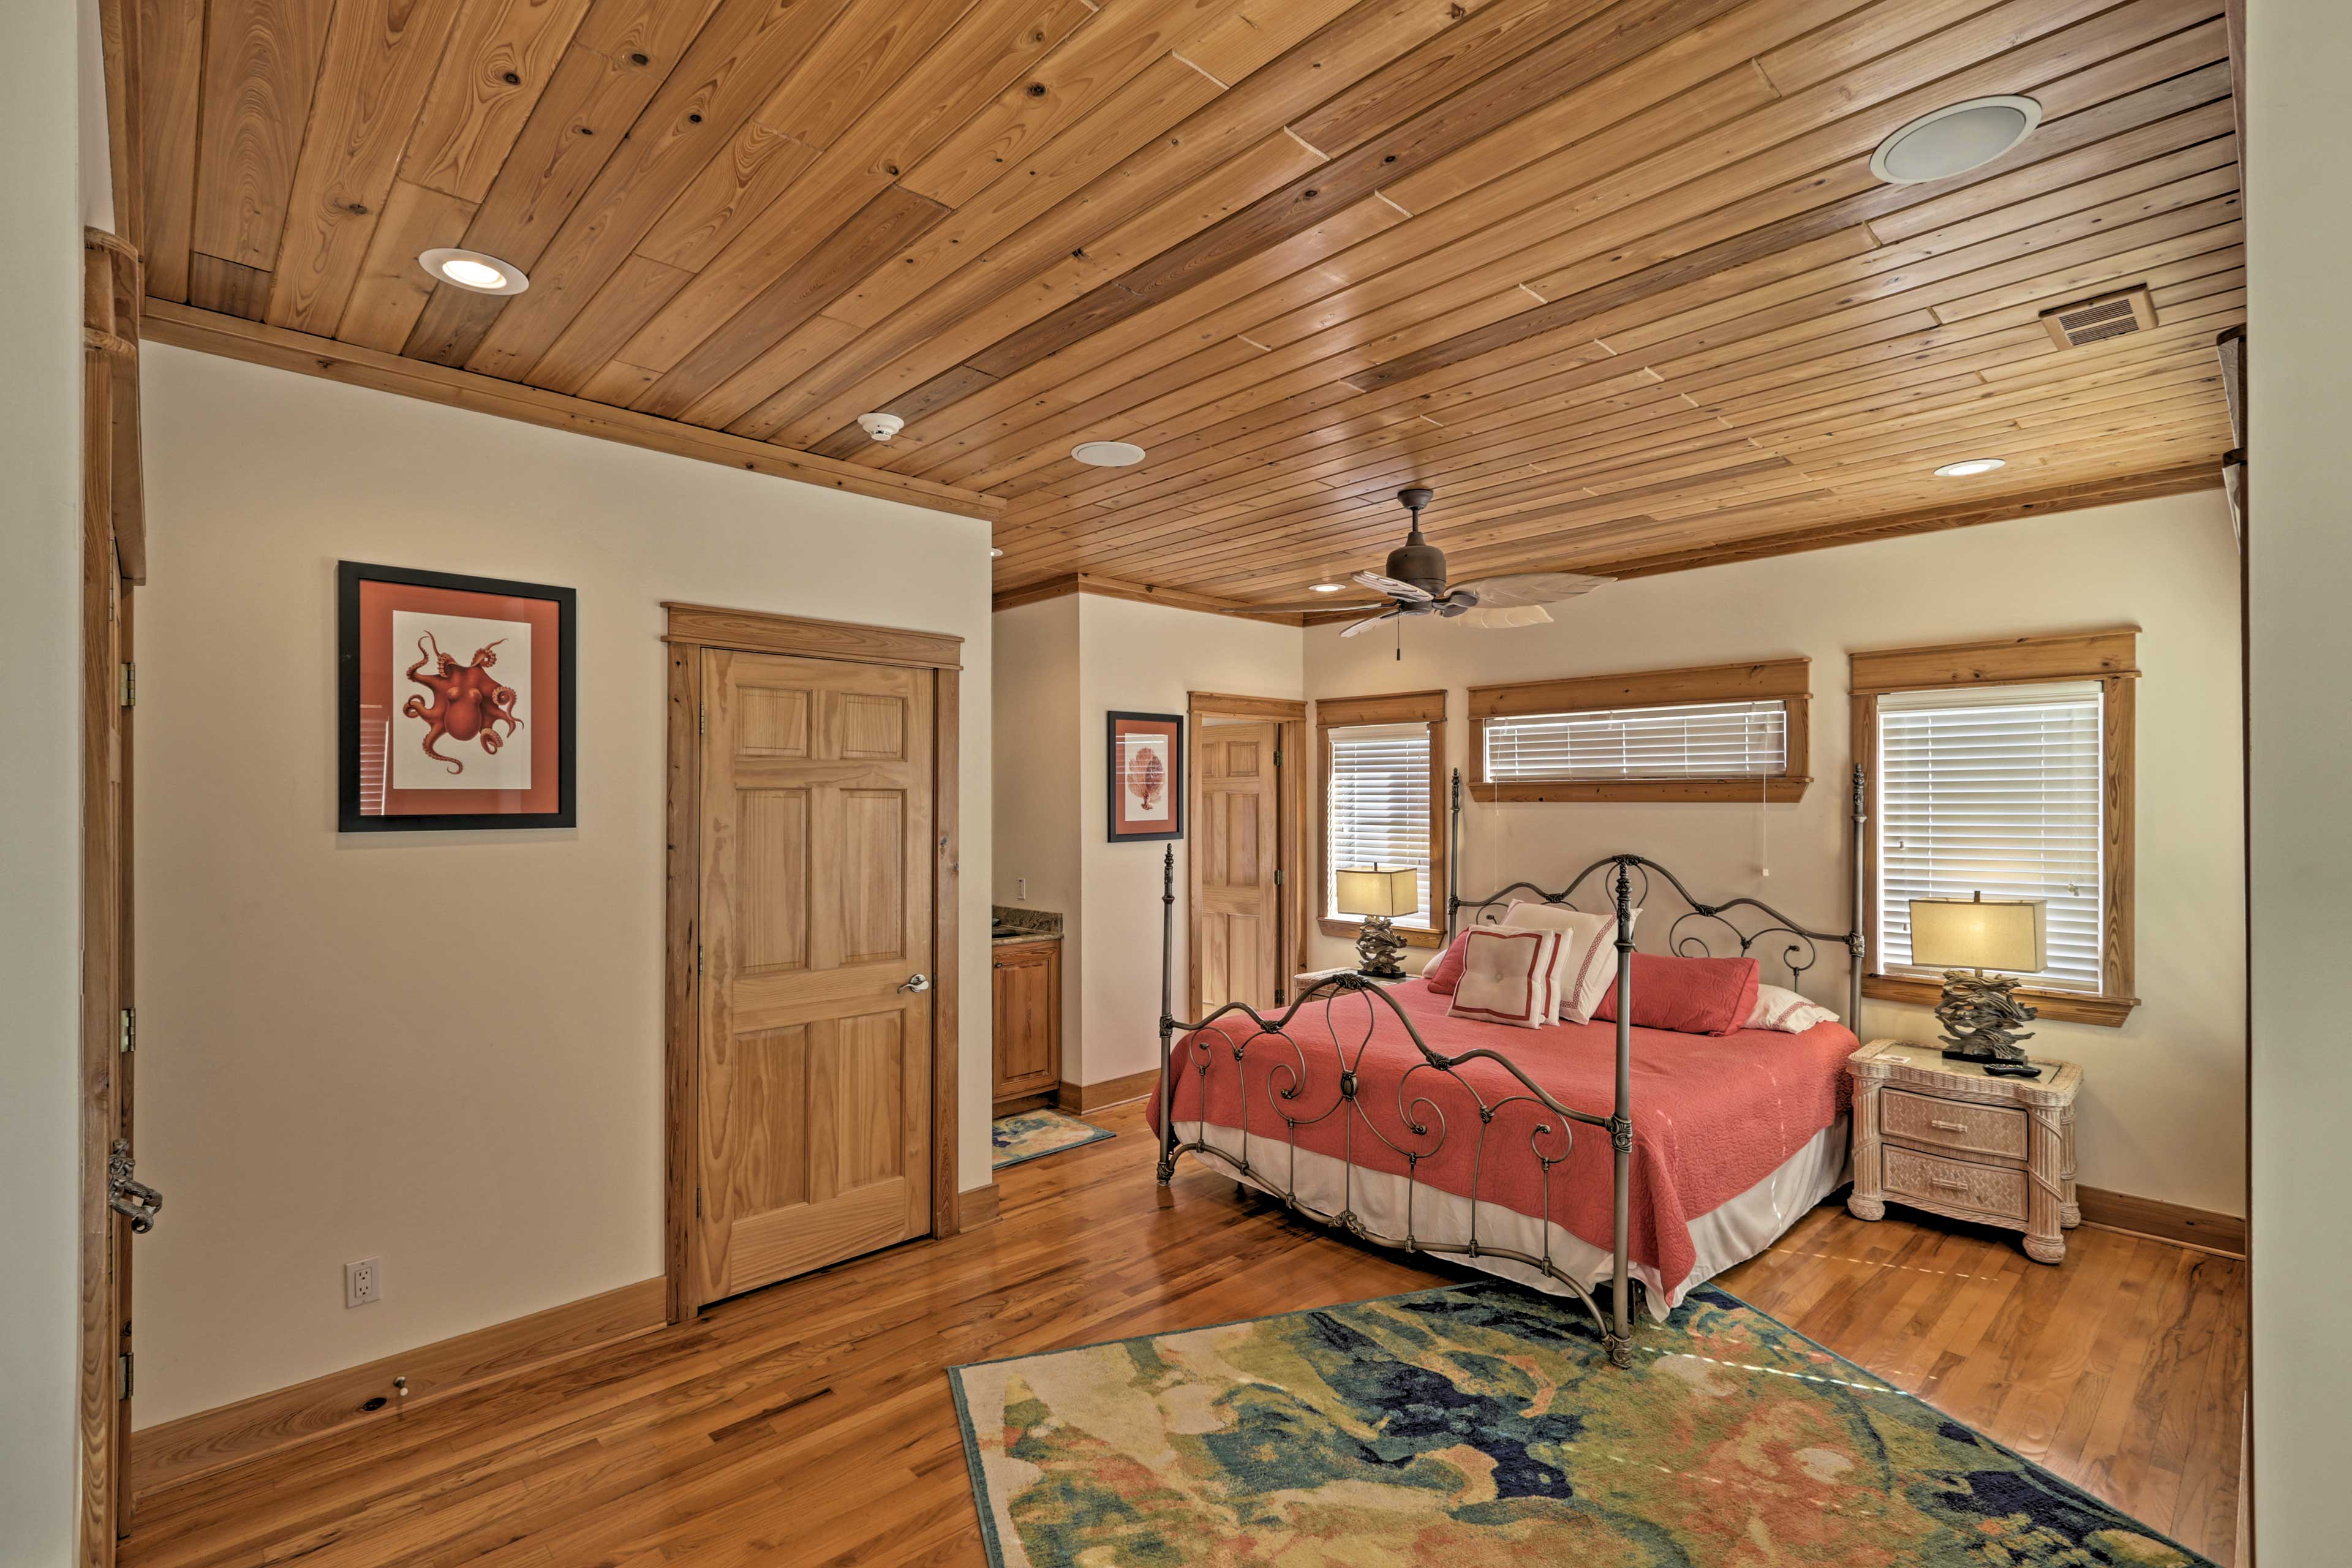 Two lucky guests can claim this second master bedroom as their own.